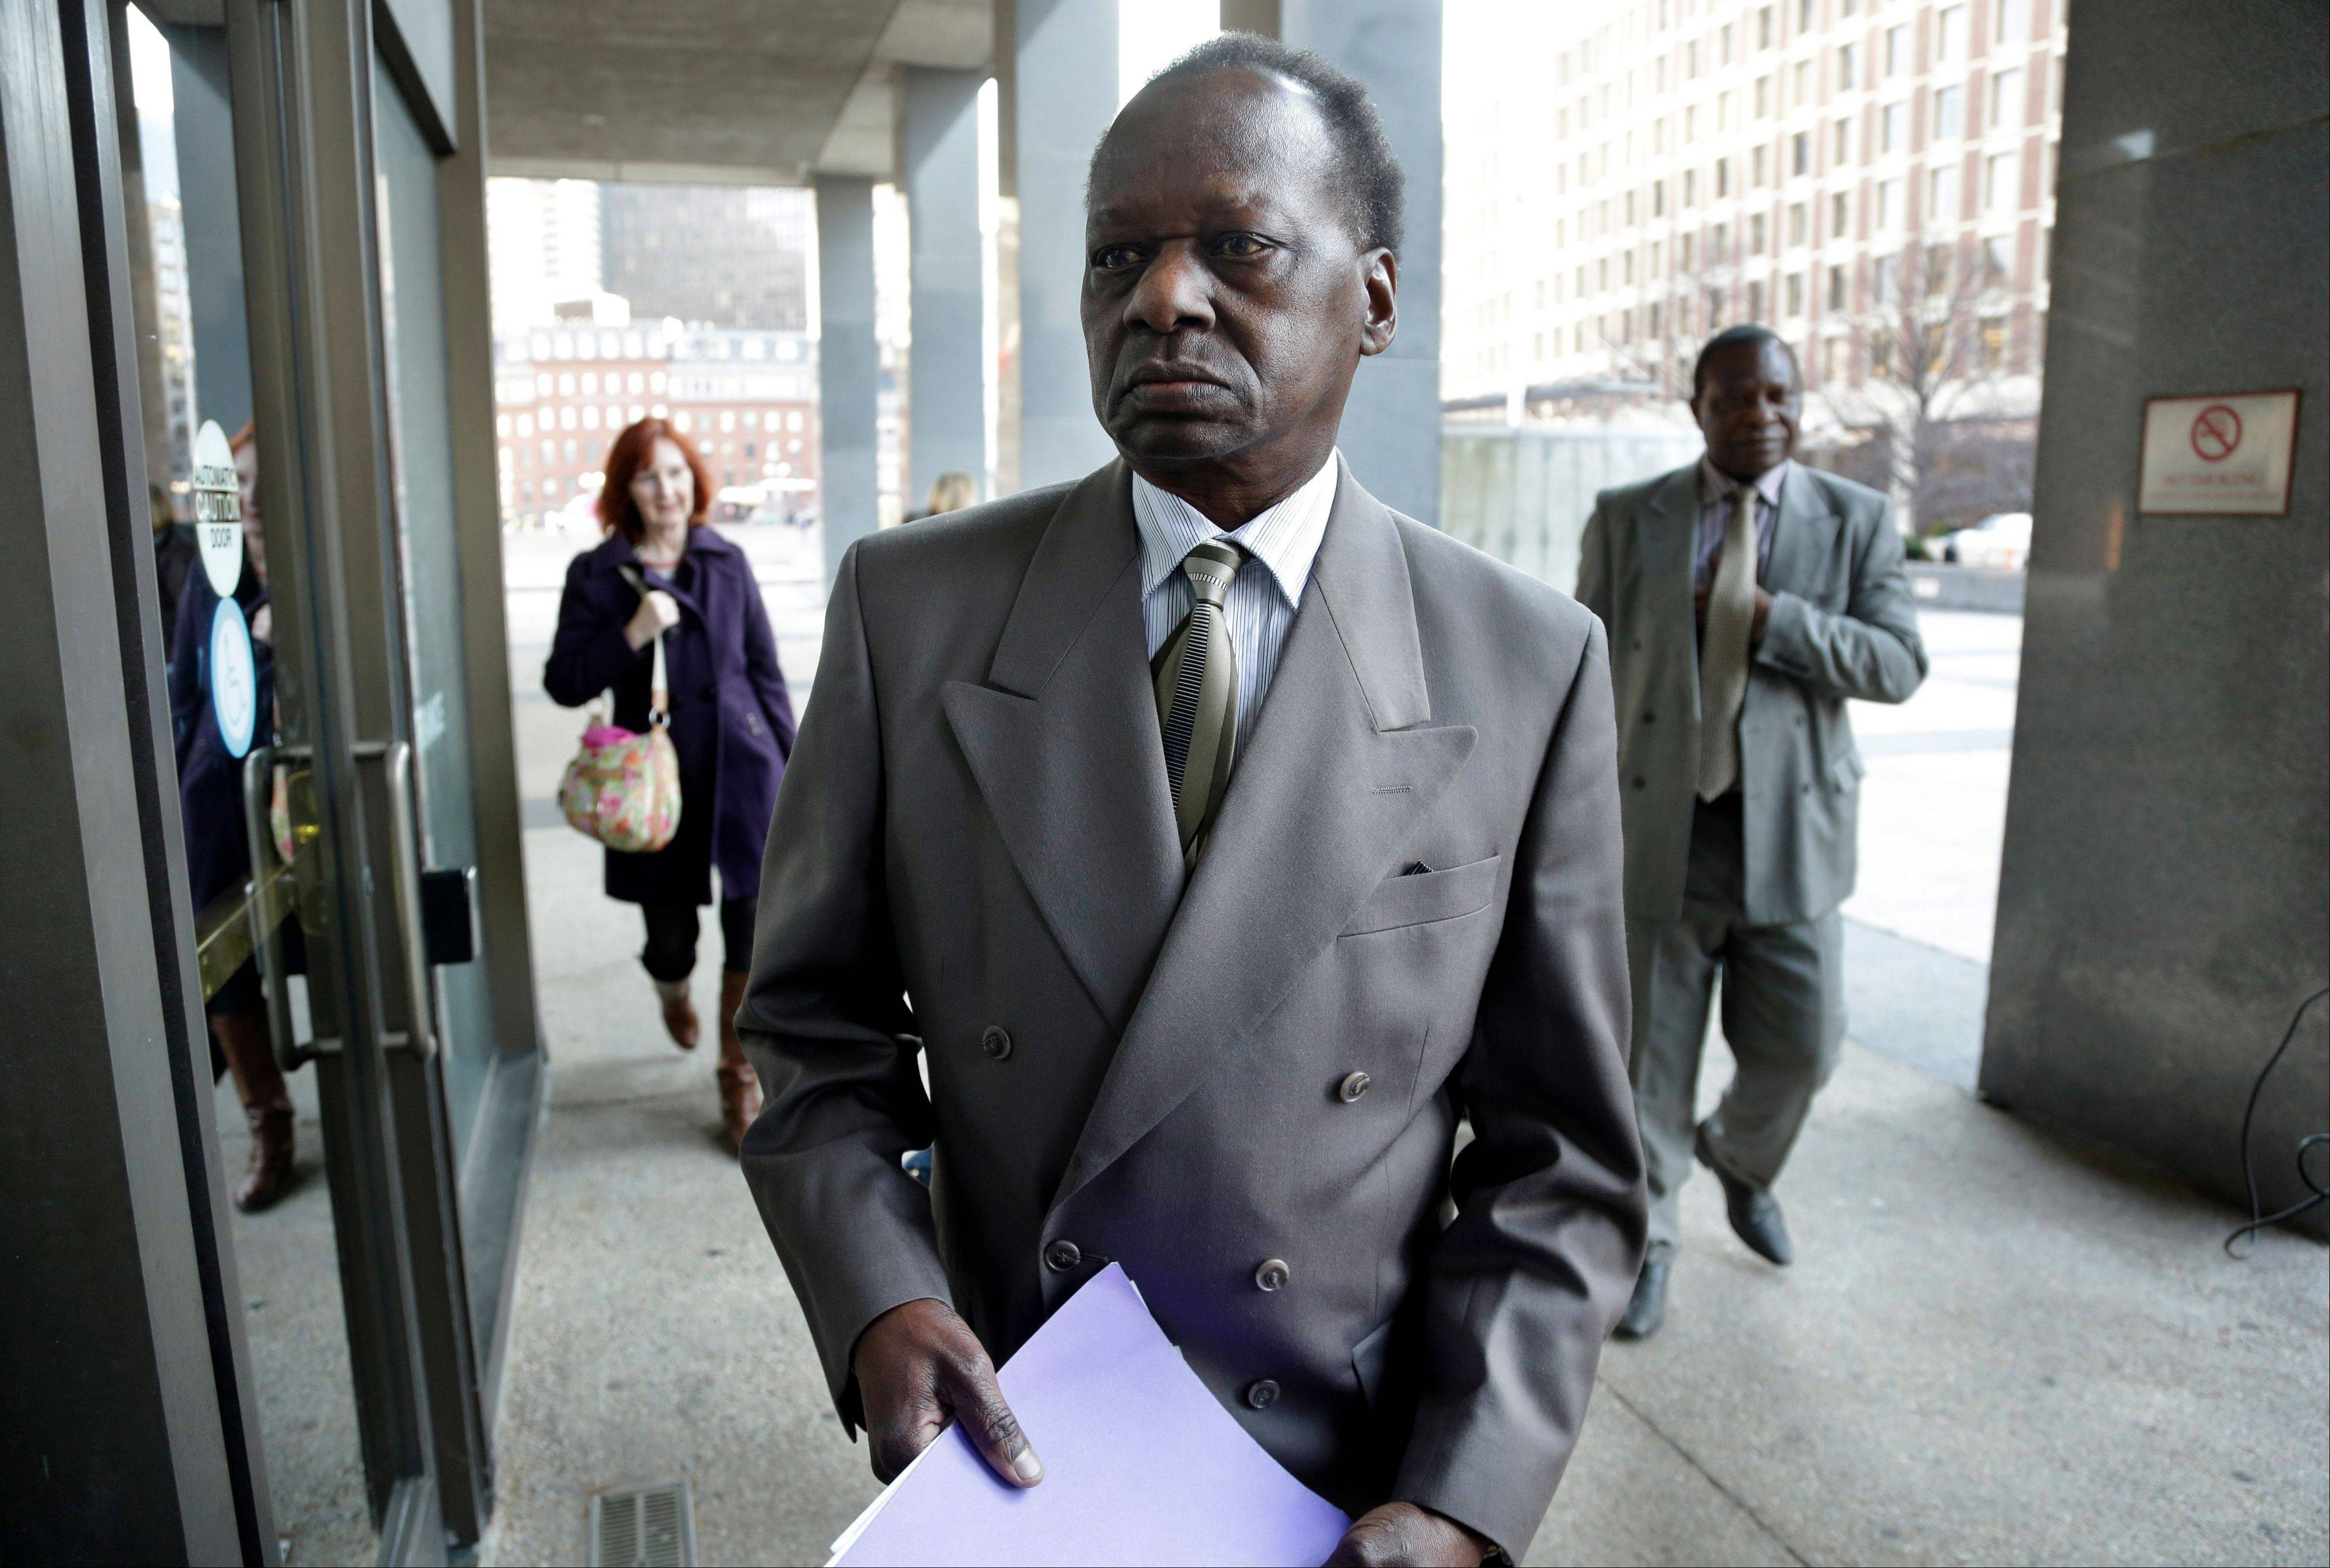 Onyango Obama, President Barack Obama's Kenyan-born uncle, arrives at U.S. Immigration Court for a deportation hearing Tuesday.